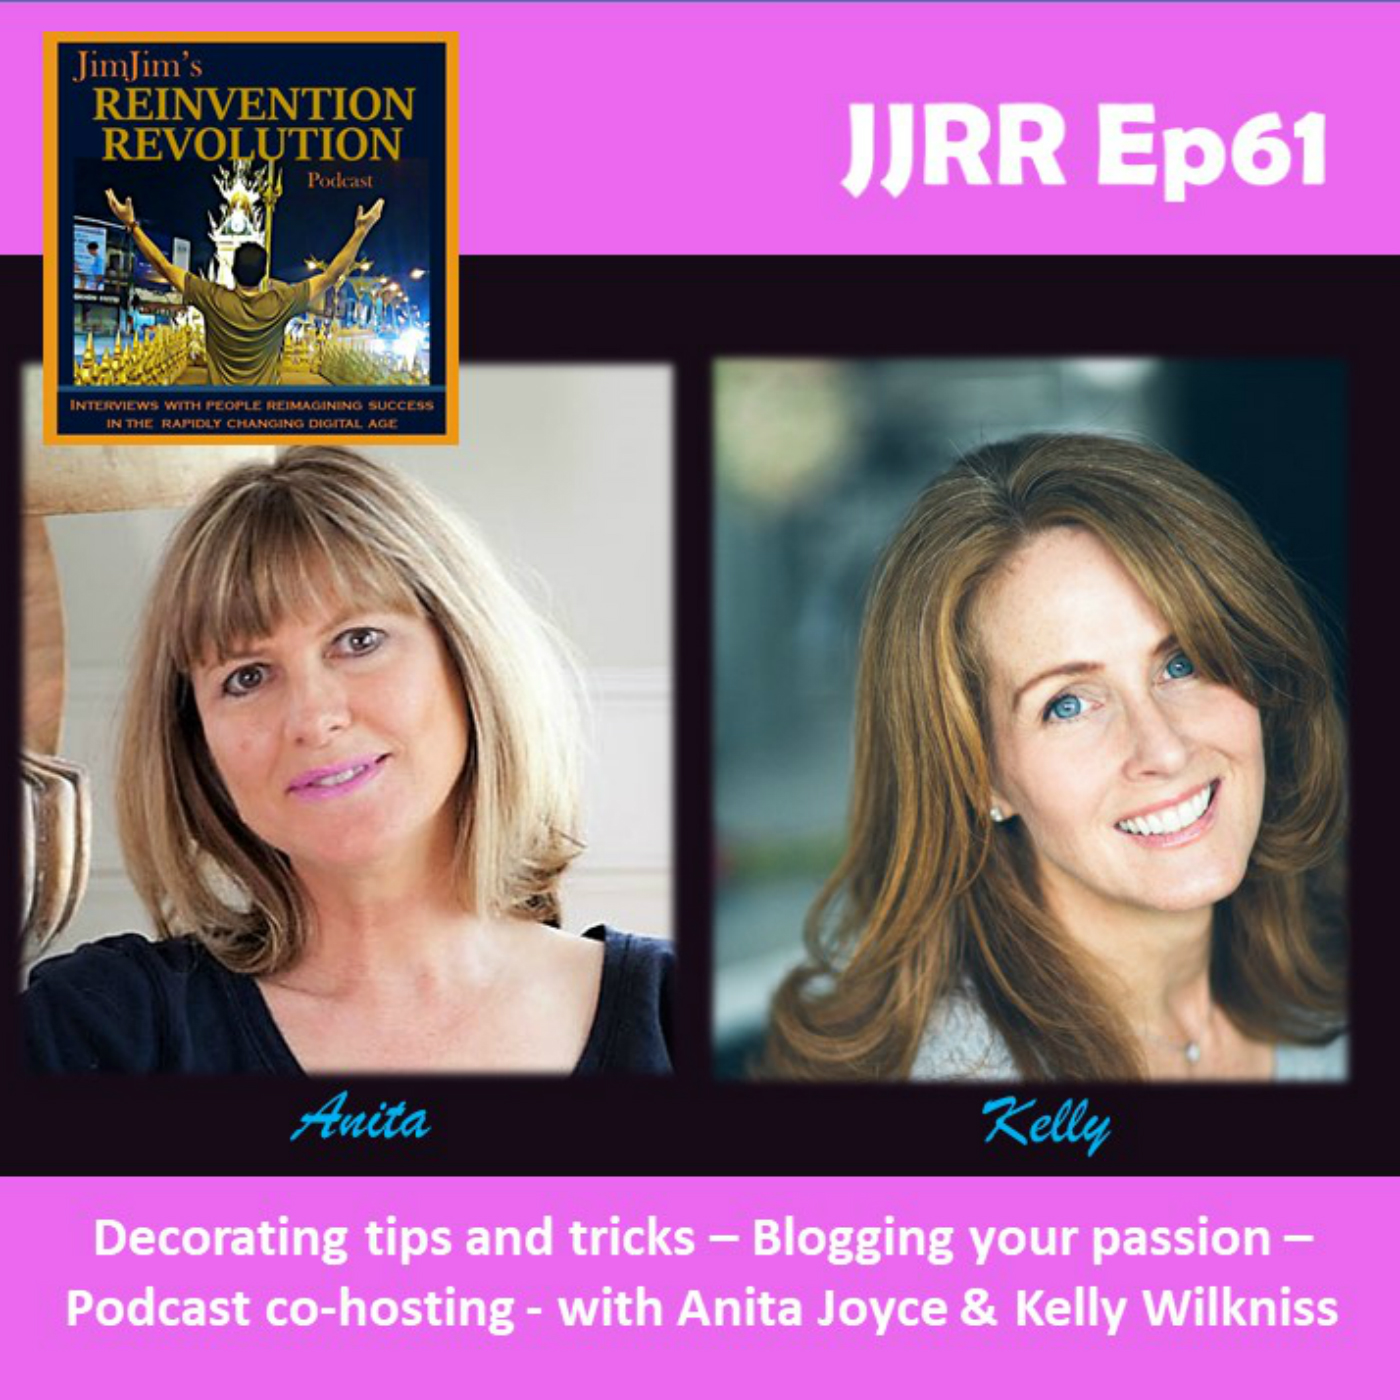 JJRR 61 Decorating tips and tricks – Blogging your passion – Podcast co-hosting with Anita Joyce & Kelly Wilkniss